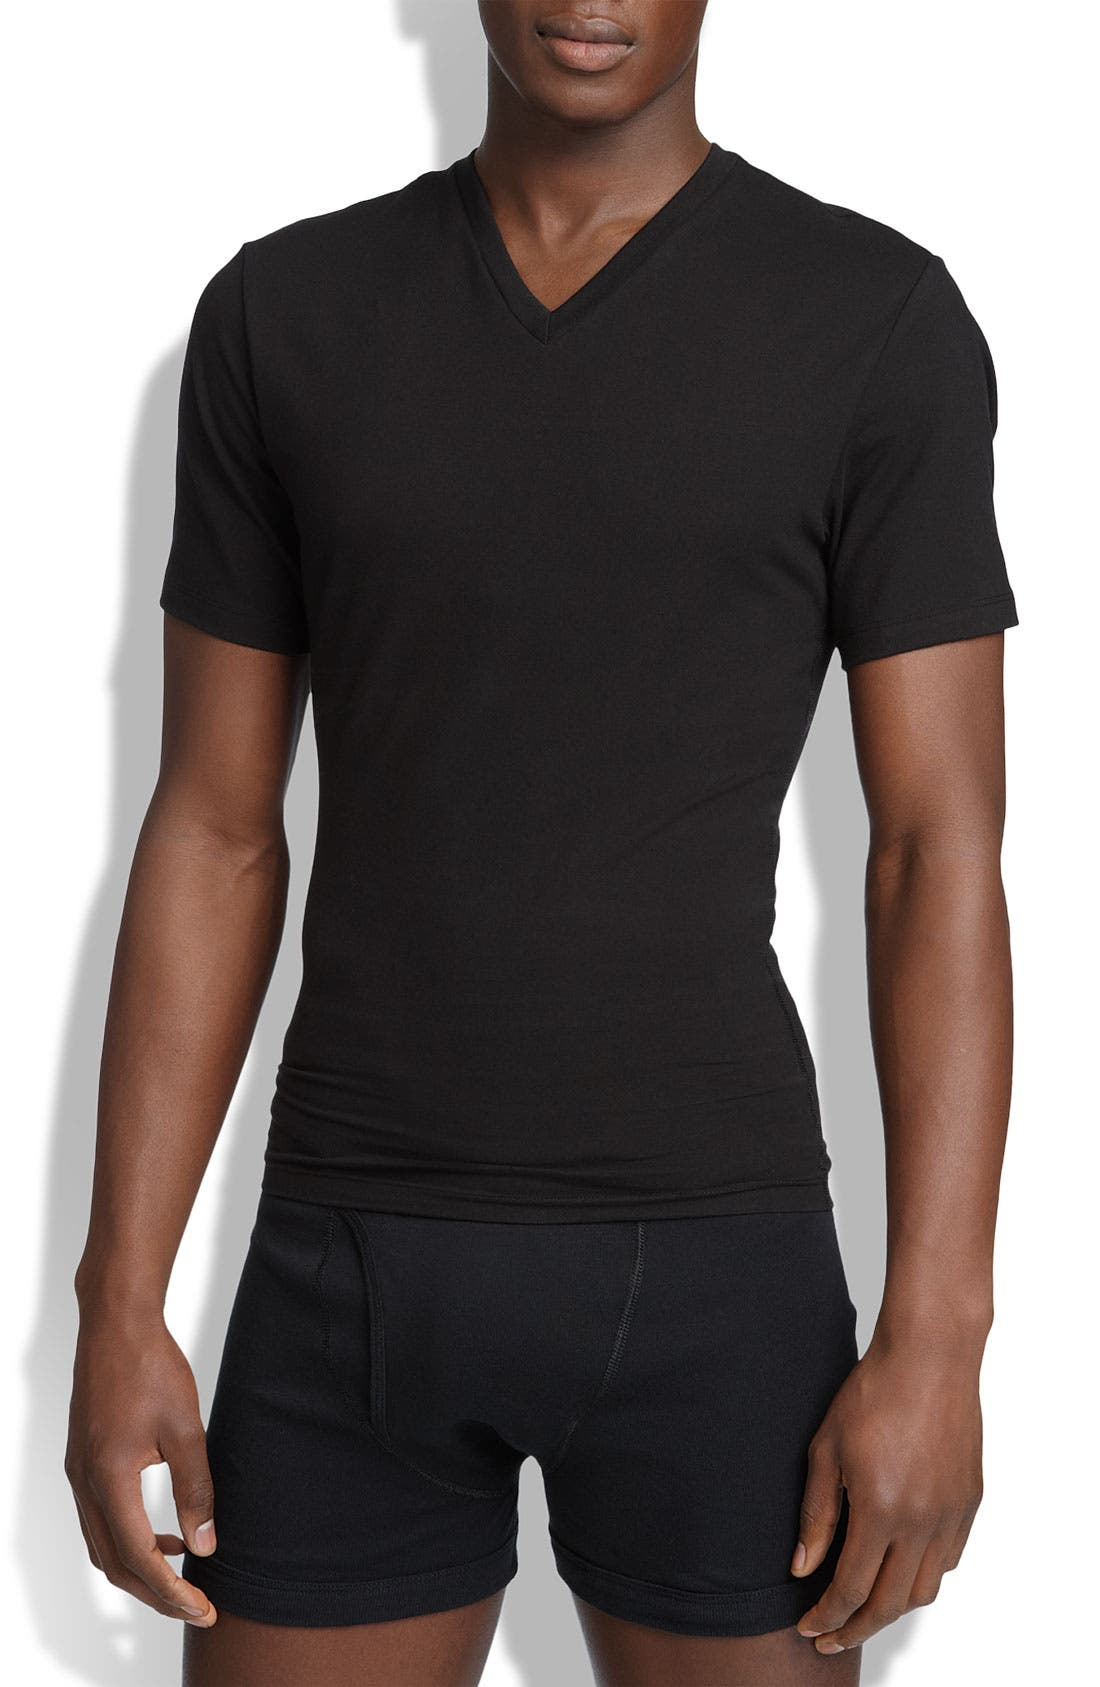 Alternate Image 1 Selected - SPANX® V-Neck Cotton Compression T-Shirt